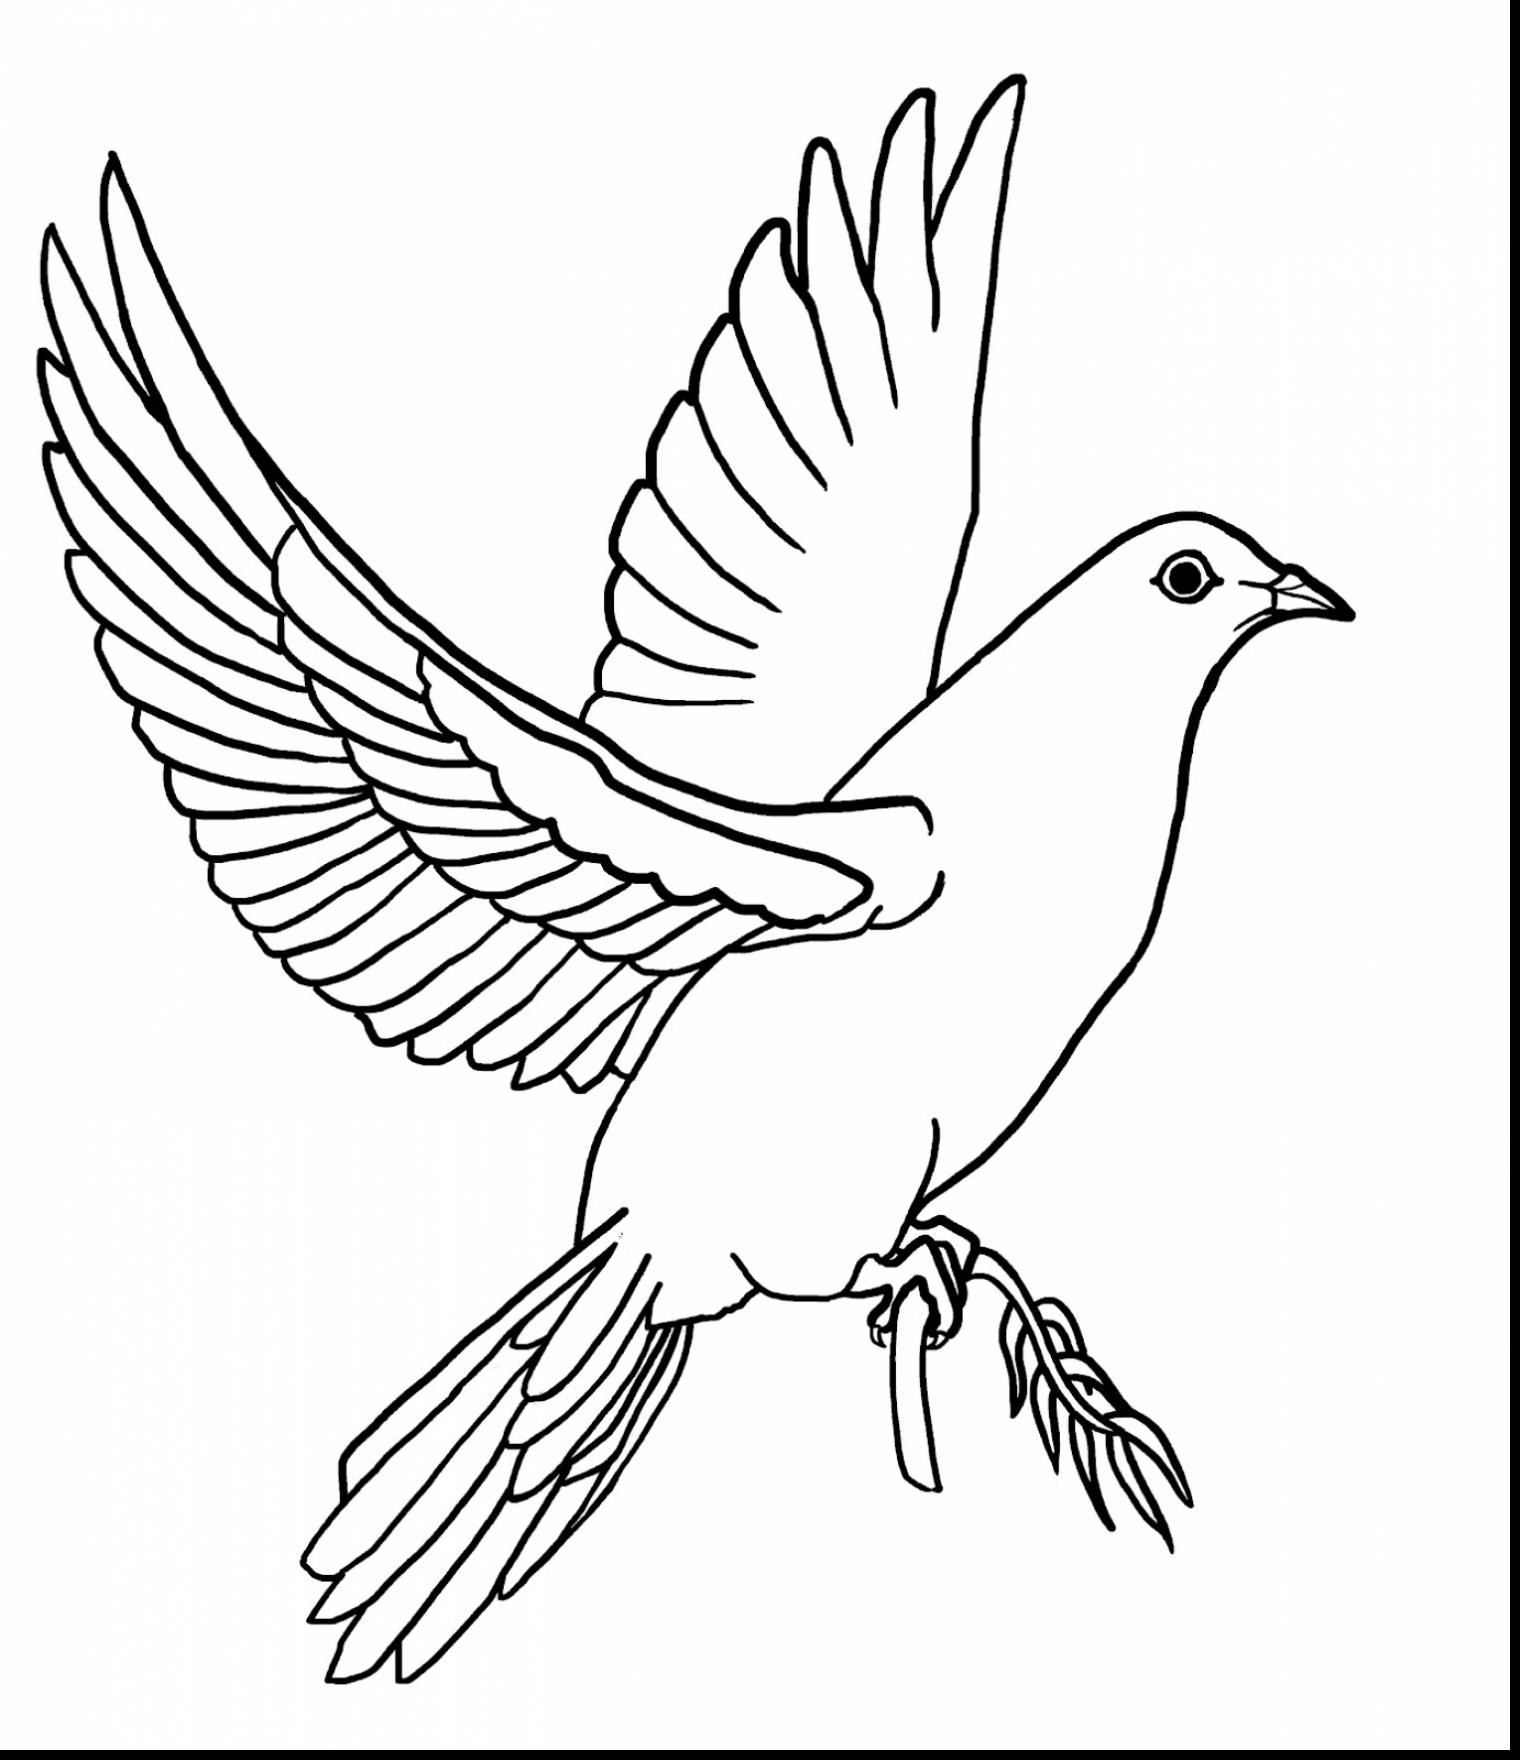 dove coloring page dove coloring pages download and print dove coloring pages page coloring dove